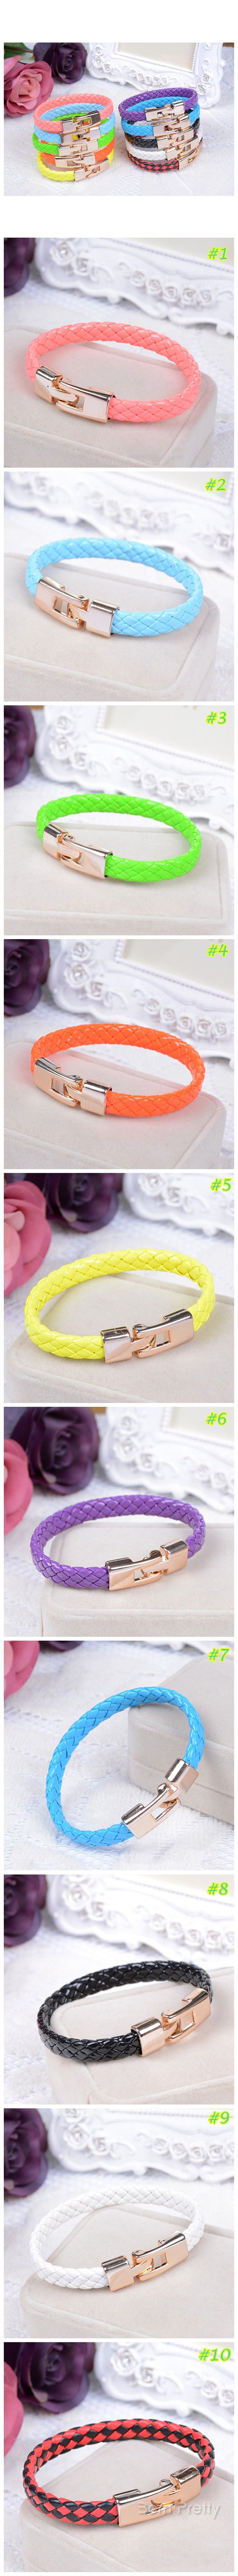 $0.99 Bright Color Braided Leather Bracelet Stainless Steel Magnetic Clasp Lock Leather Bracelet - BornPrettyStore.com